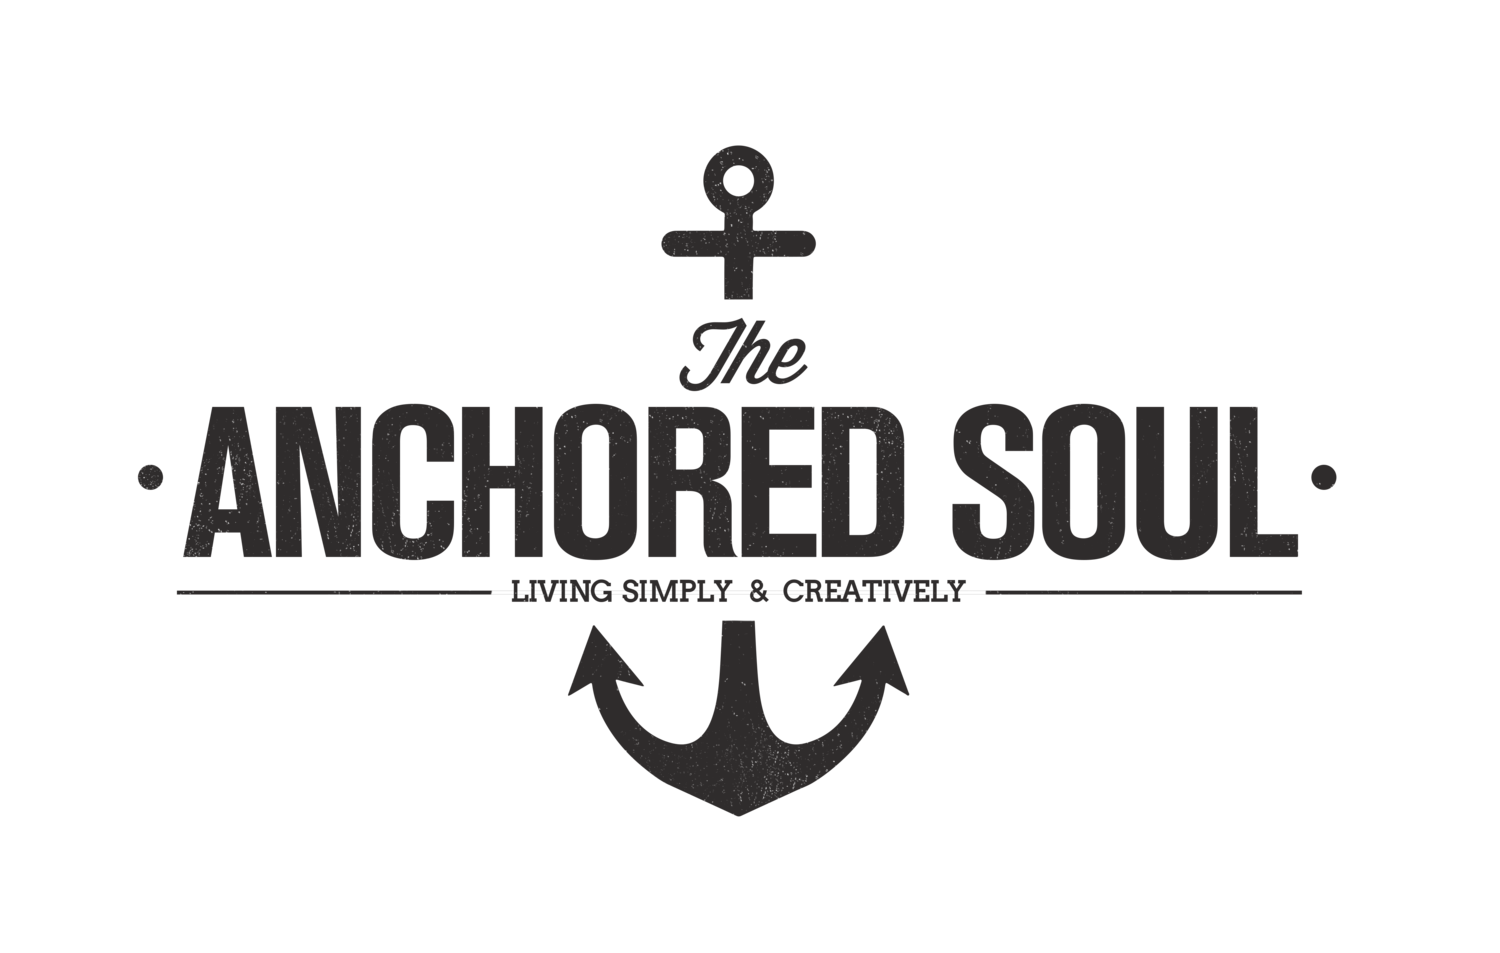 The Anchored Soul